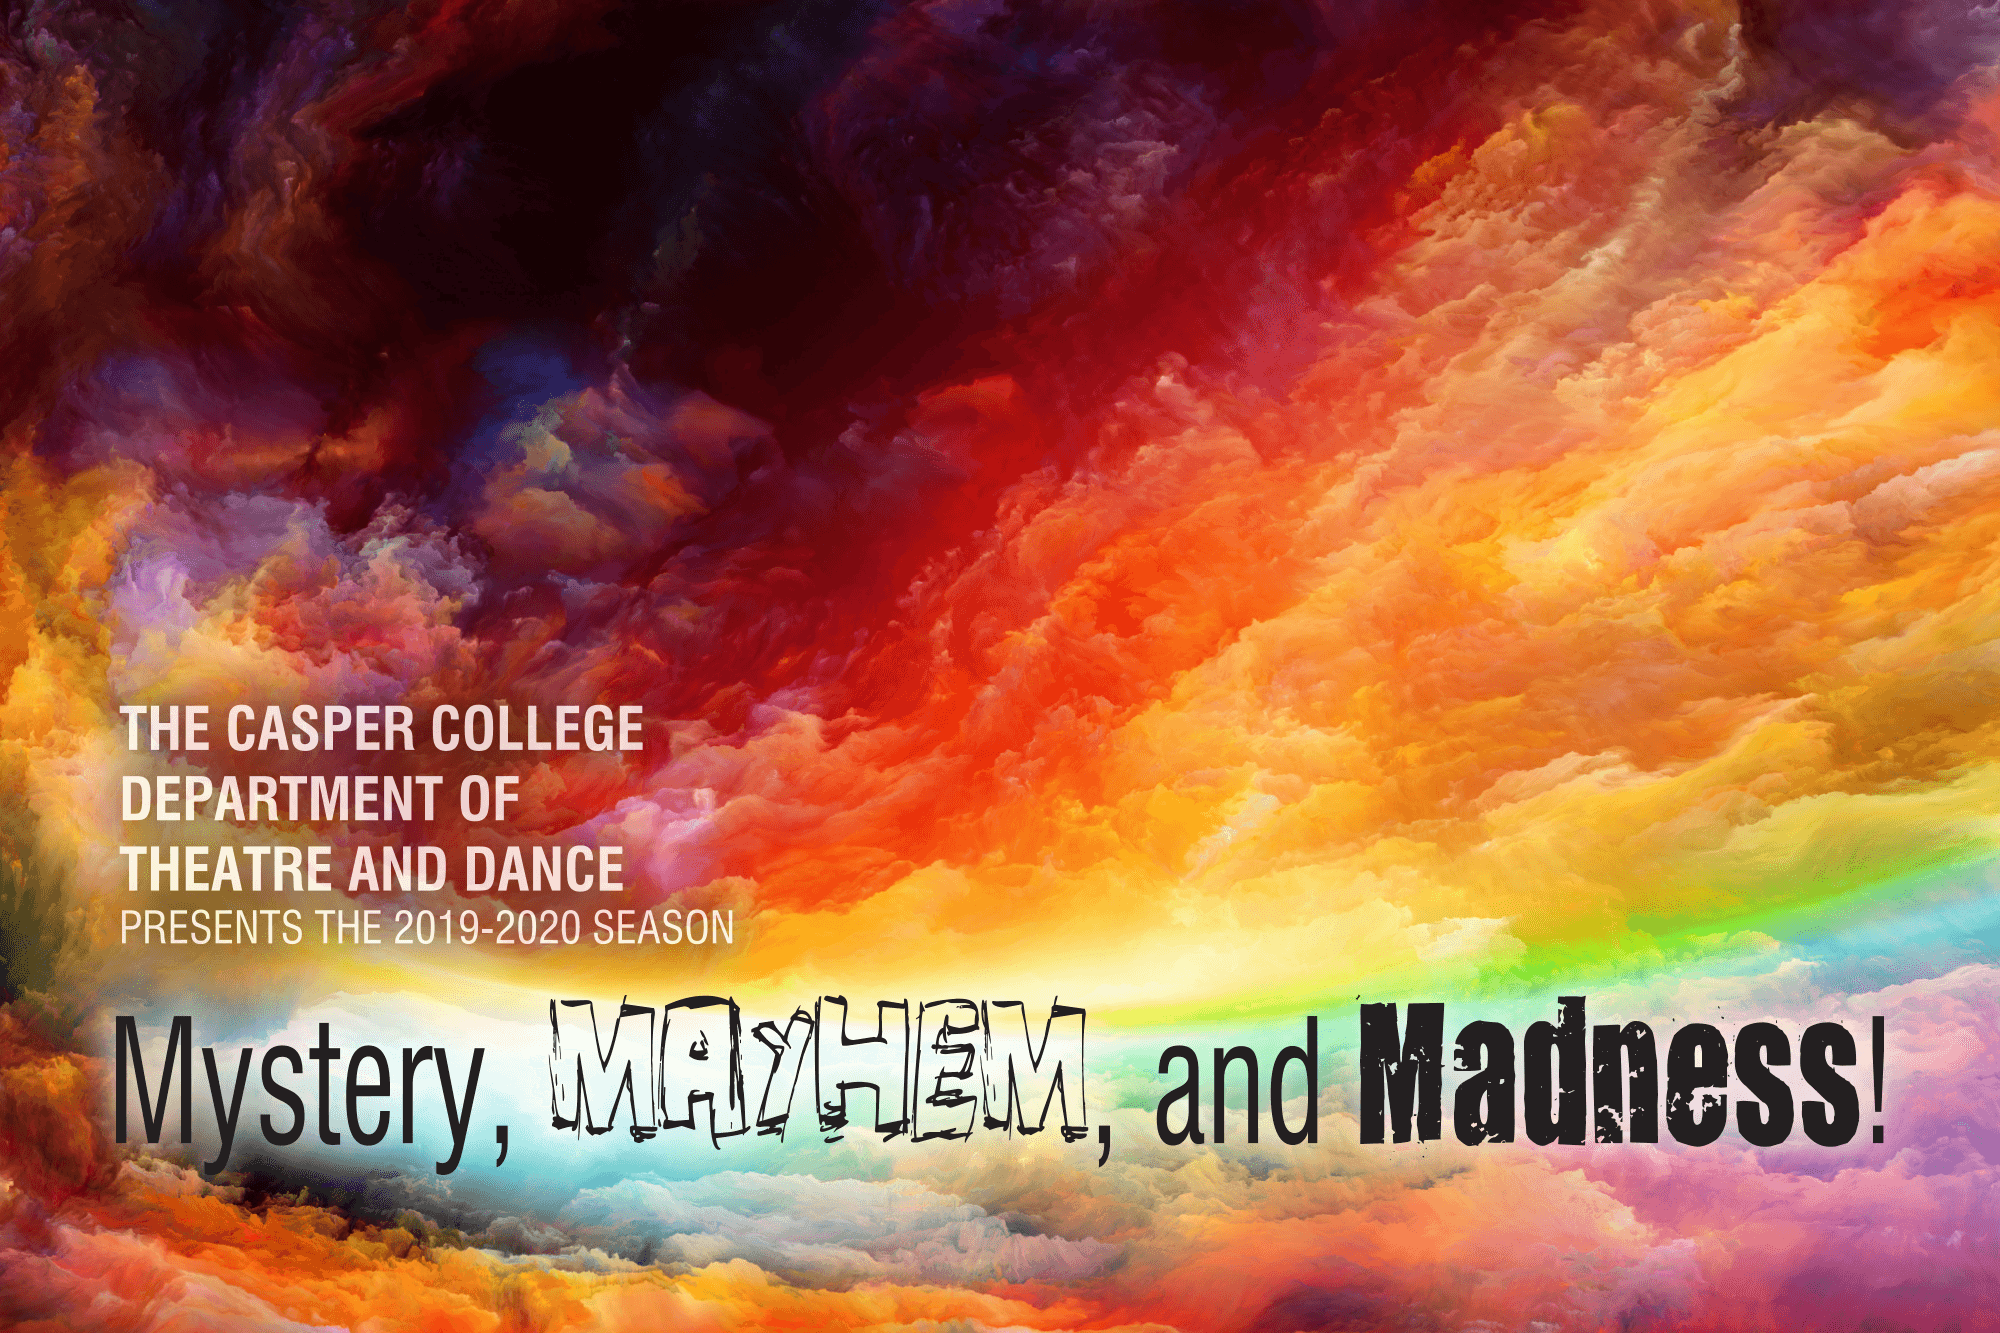 Mystery, Mayhem, and Madness with a background of a rainbow colored cloud.